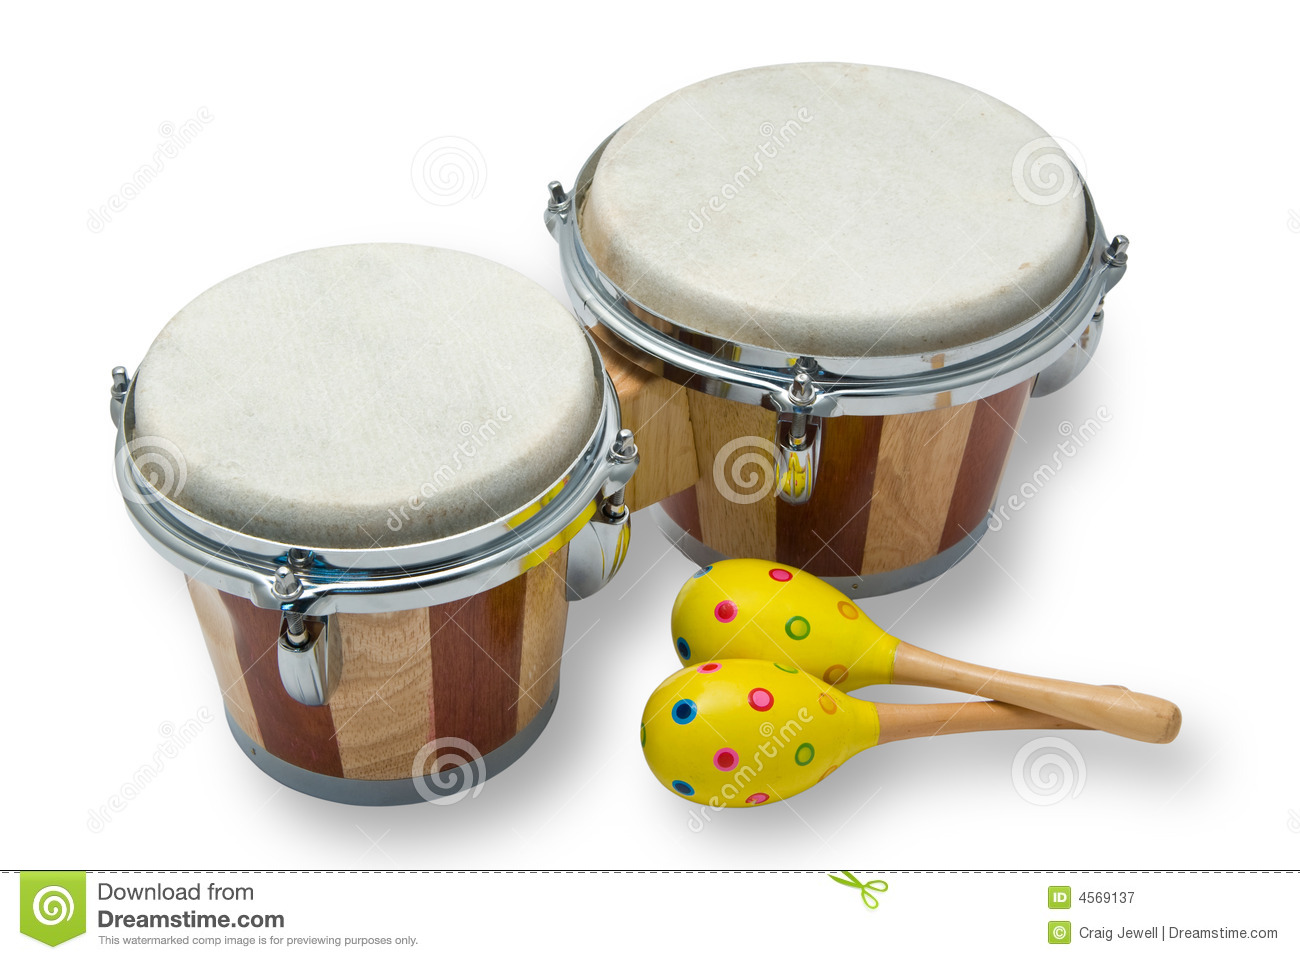 Royalty Free Stock Photography: Bongo Drums and Maracas Isolated on ...